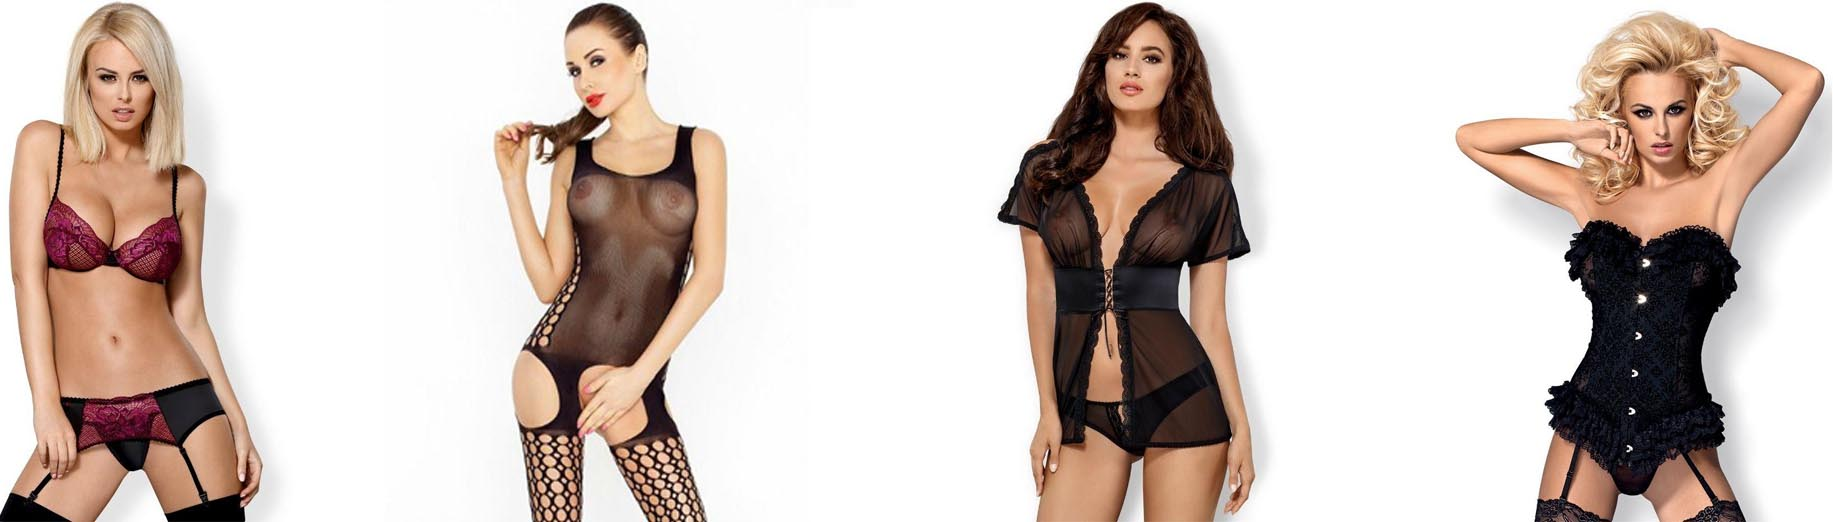 All our Lingerie products